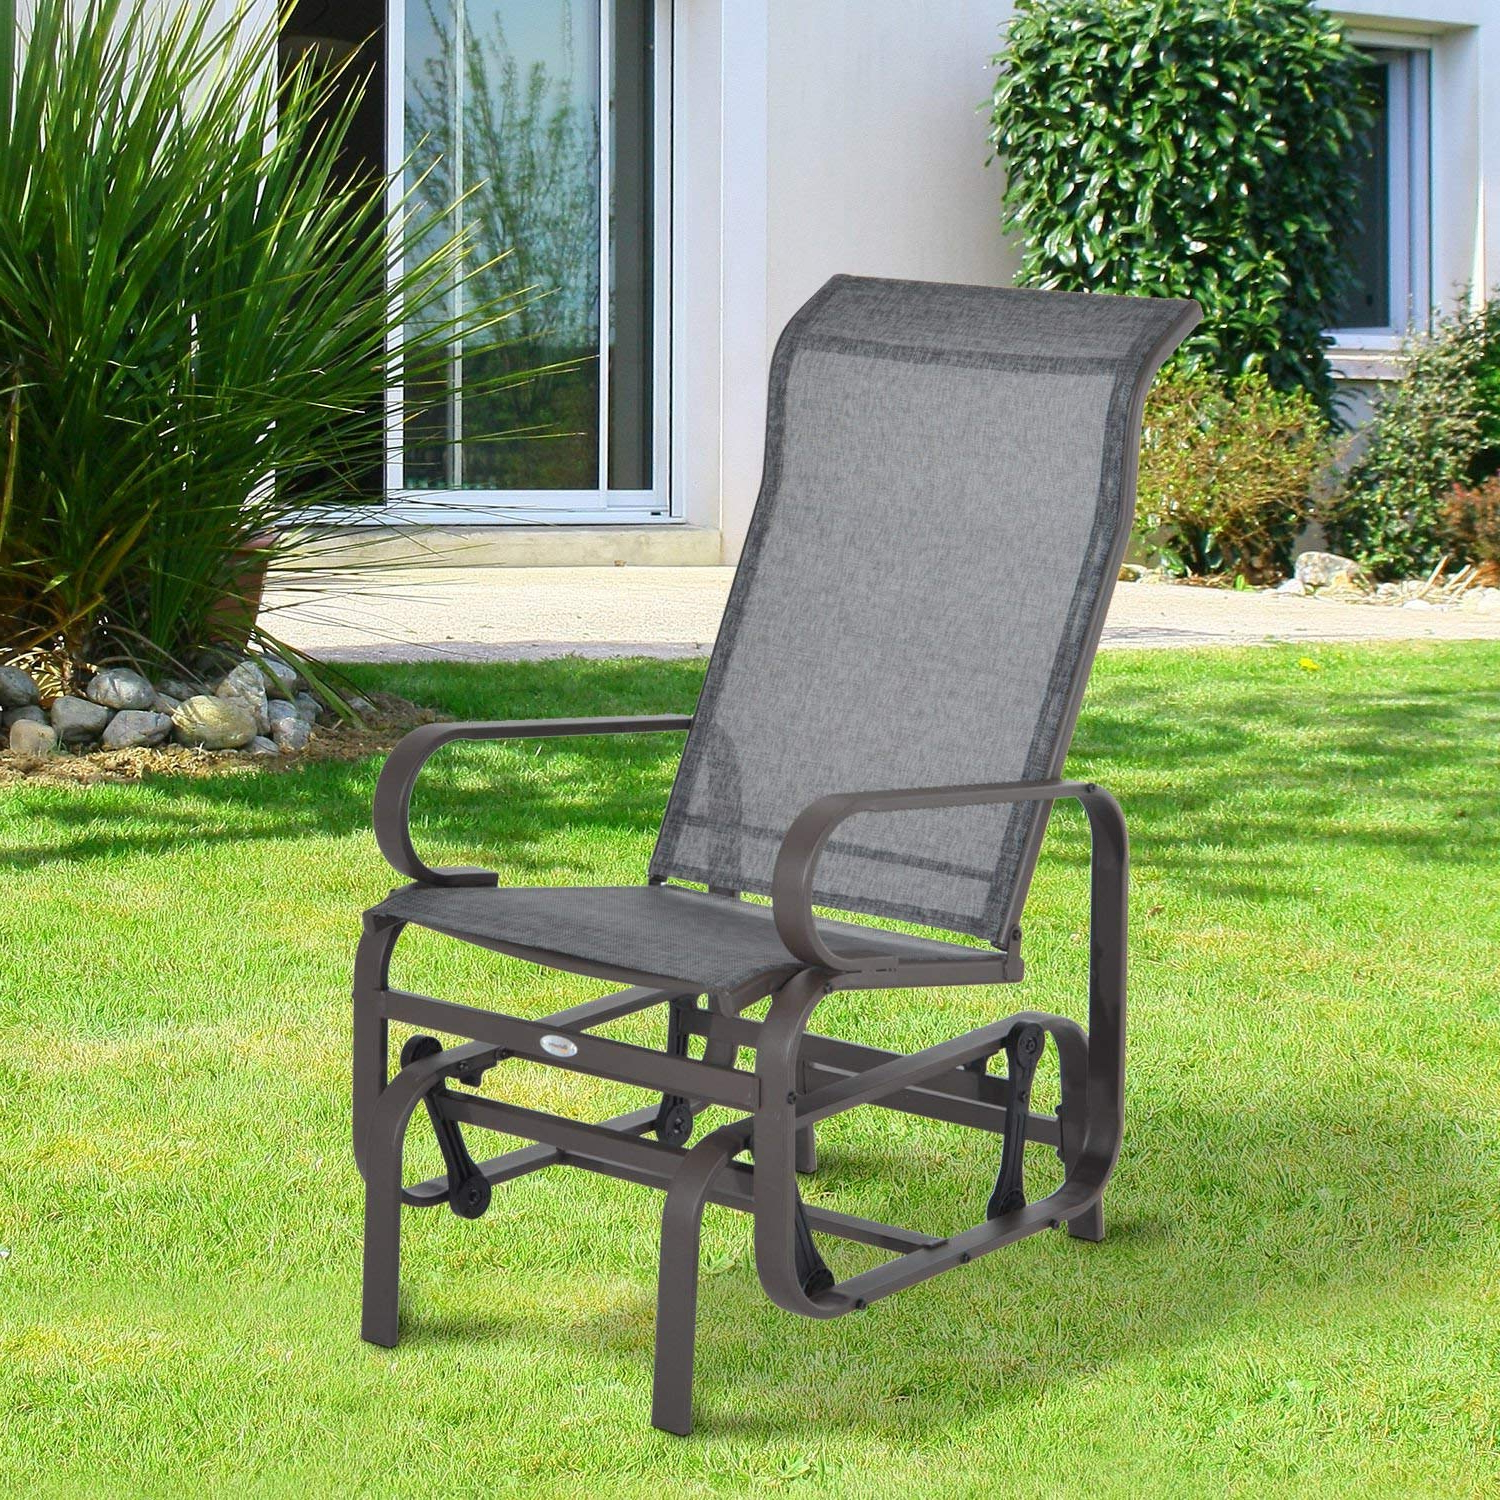 Outdoor Patio Swing Glider Bench Chair S For Popular Amazon : New Patio Porch Glider Bench Swing Sling Chair (View 23 of 30)